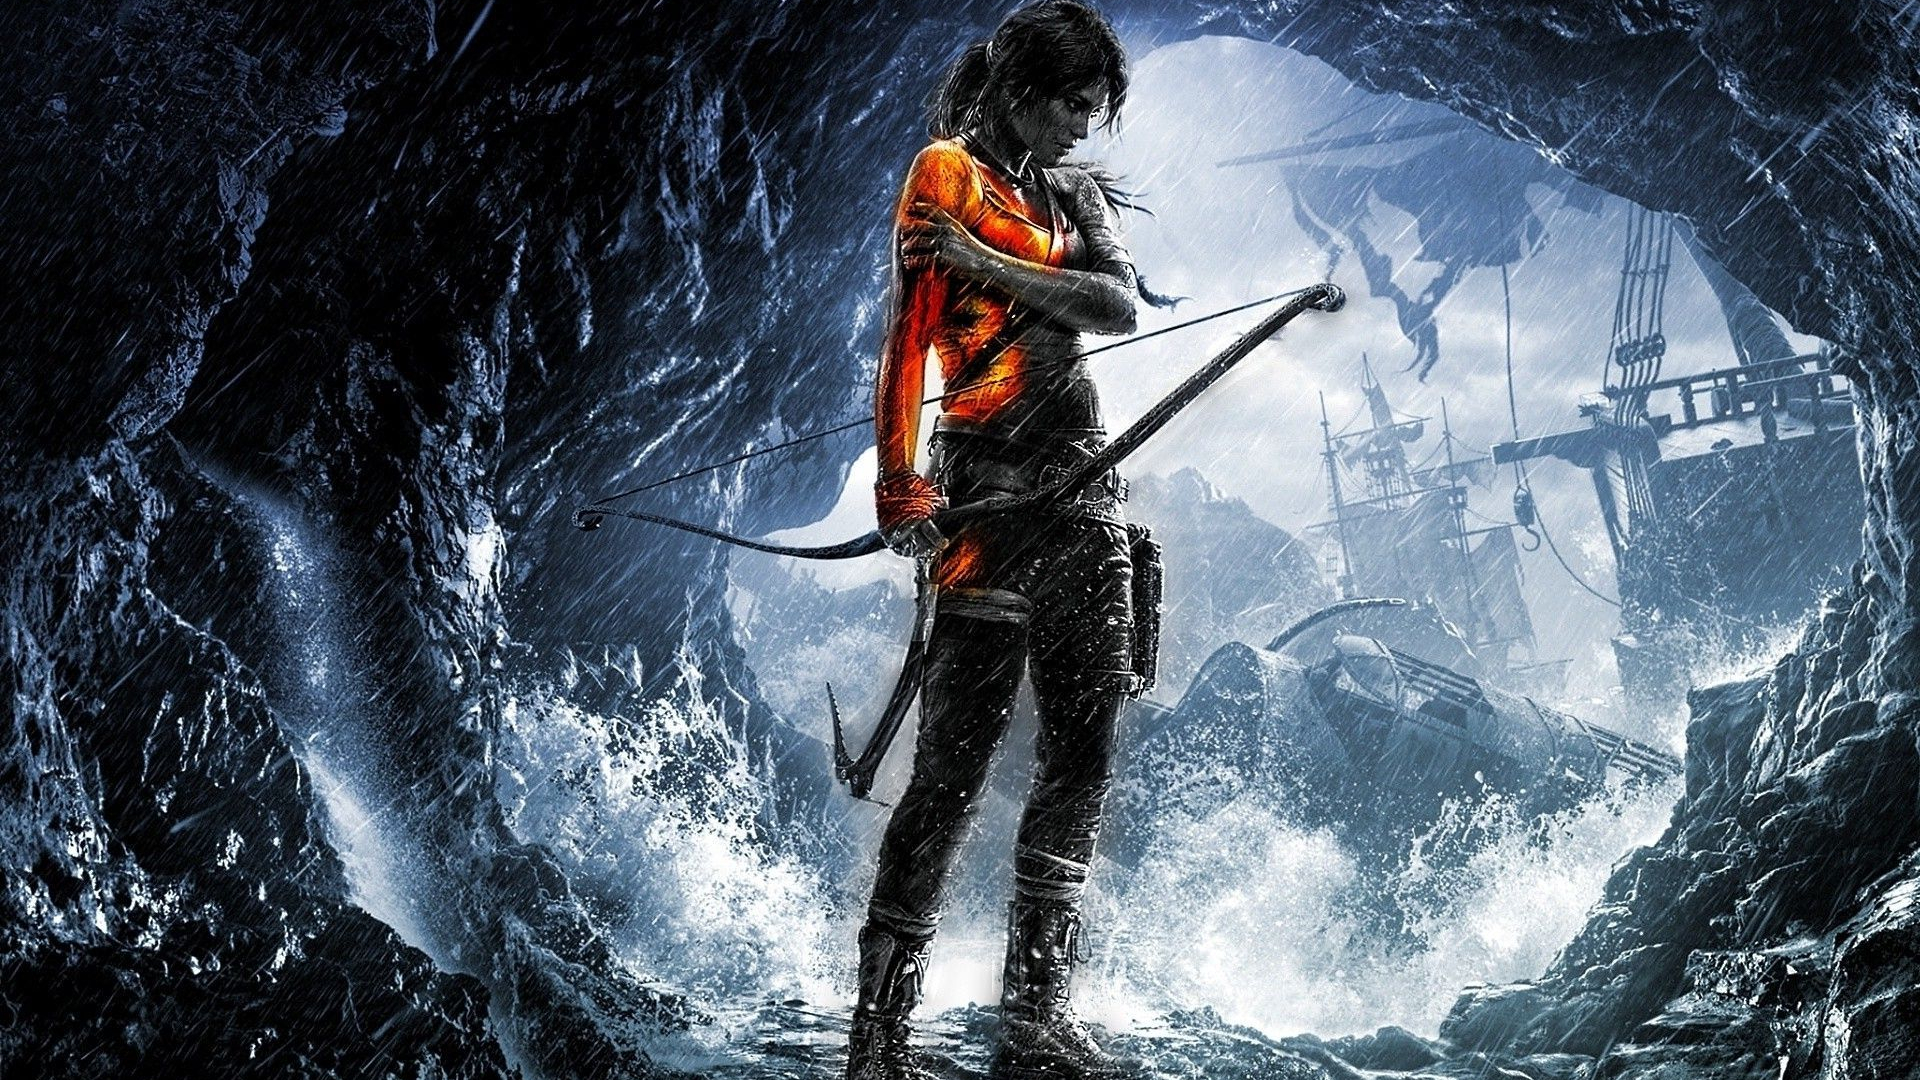 Free Download Rise Of The Tomb Raider Video Game Wallpapers Hd